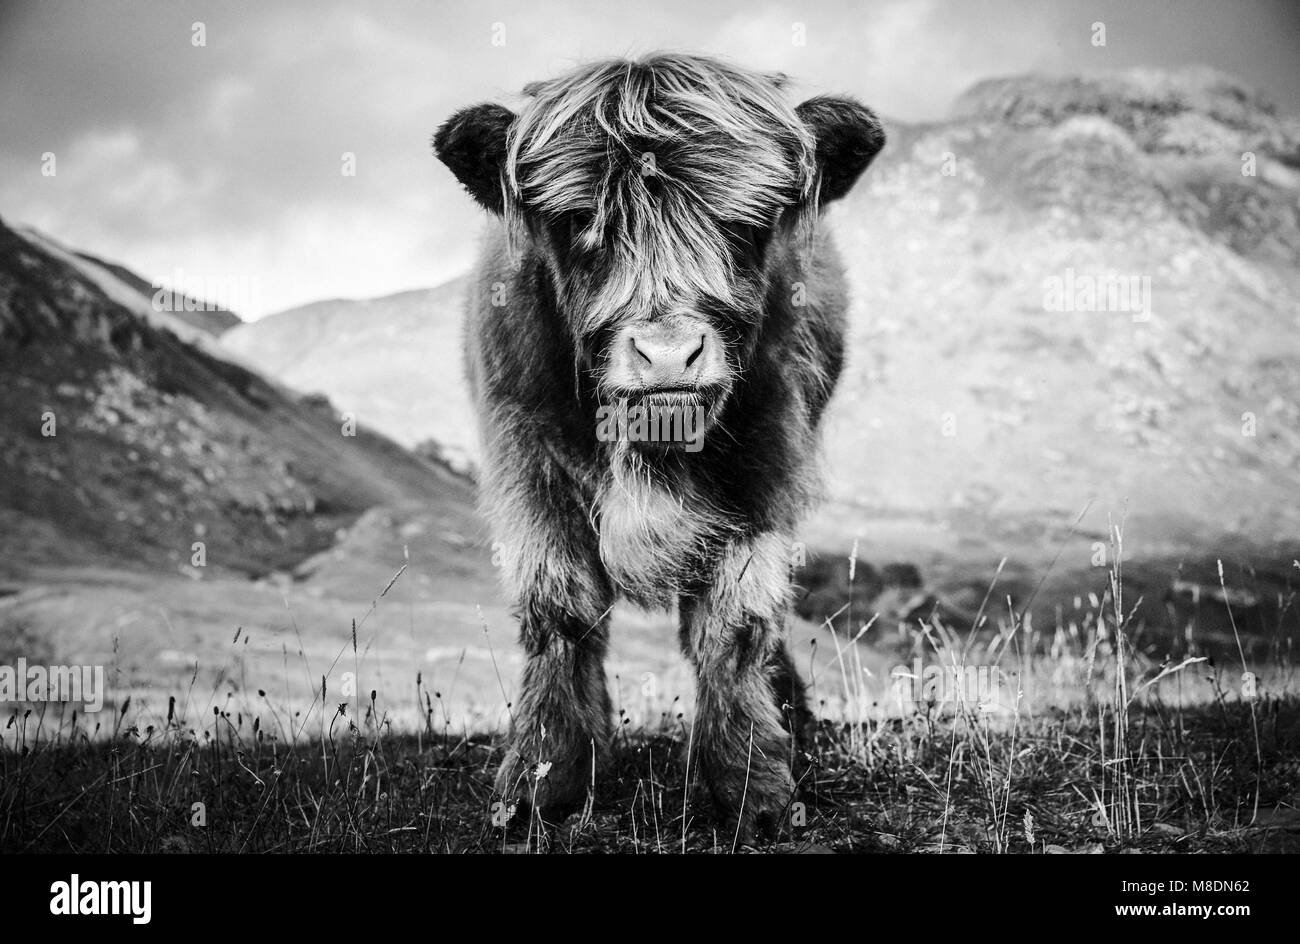 Highland cow black and white stock photos images alamy